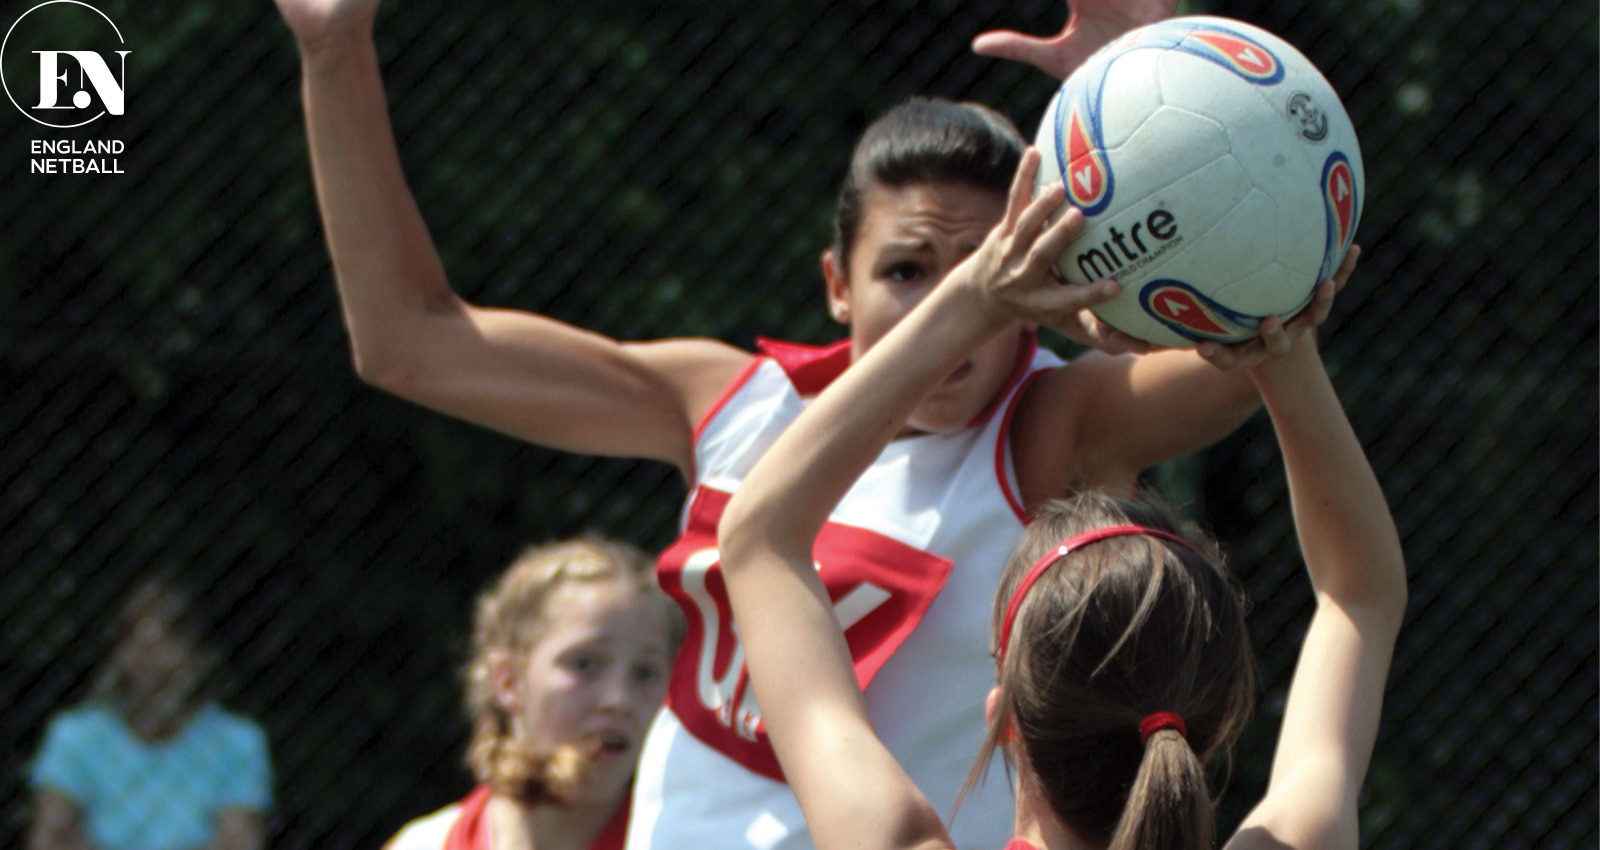 Netball Tournaments for Years 7-11